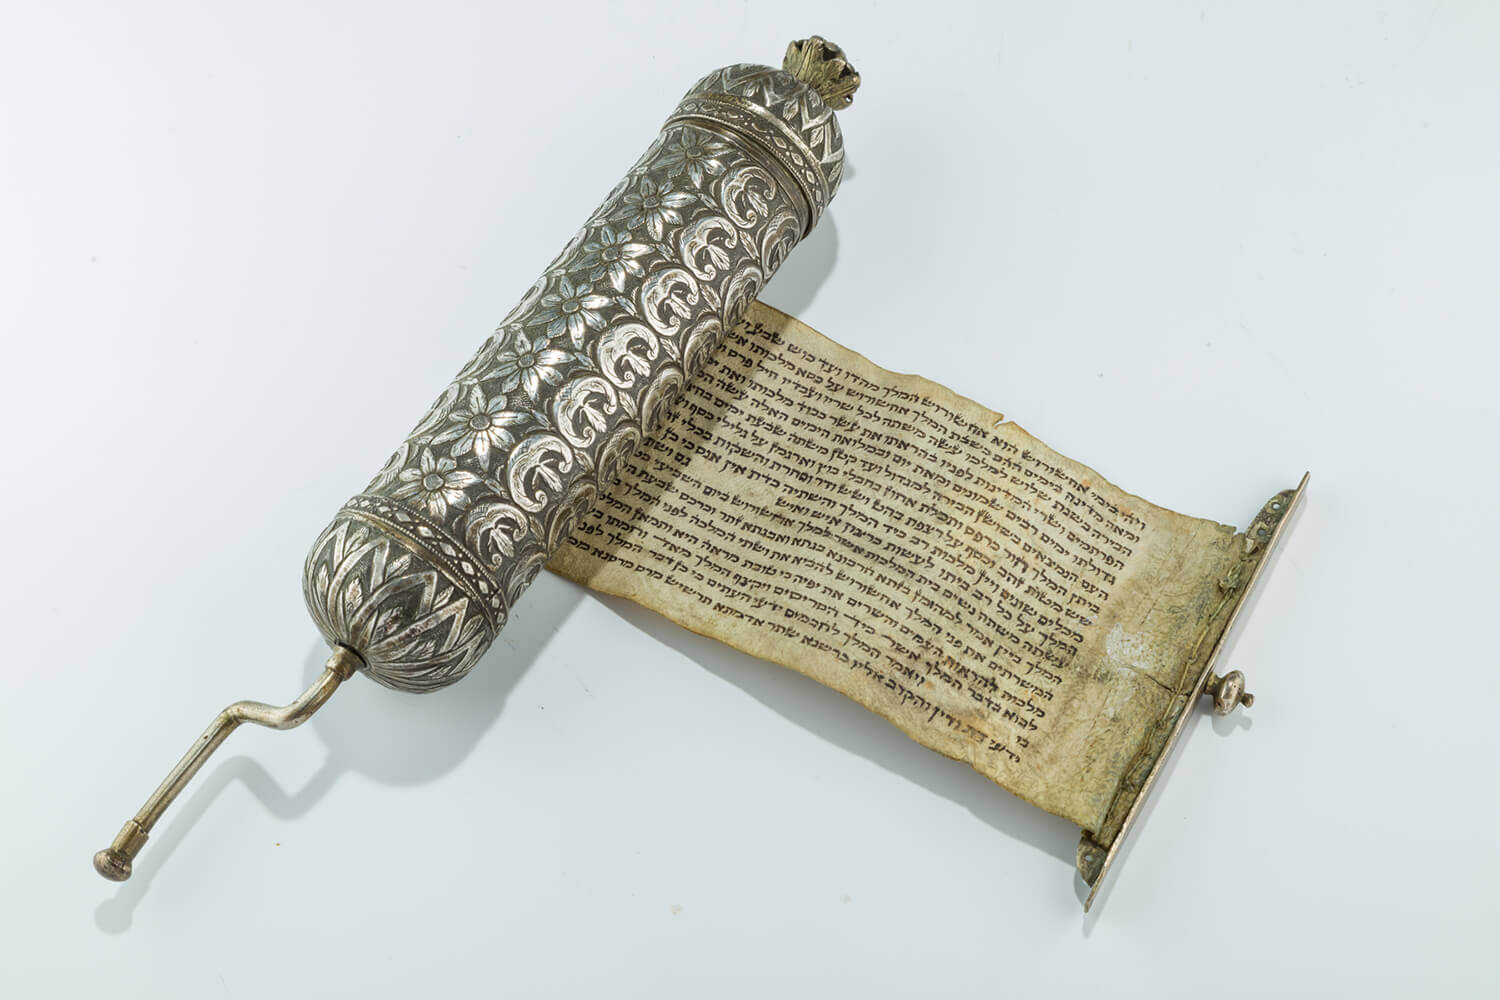 079. A SILVER MEGILLAH CASE WITH ORIGINAL MEGILLAH